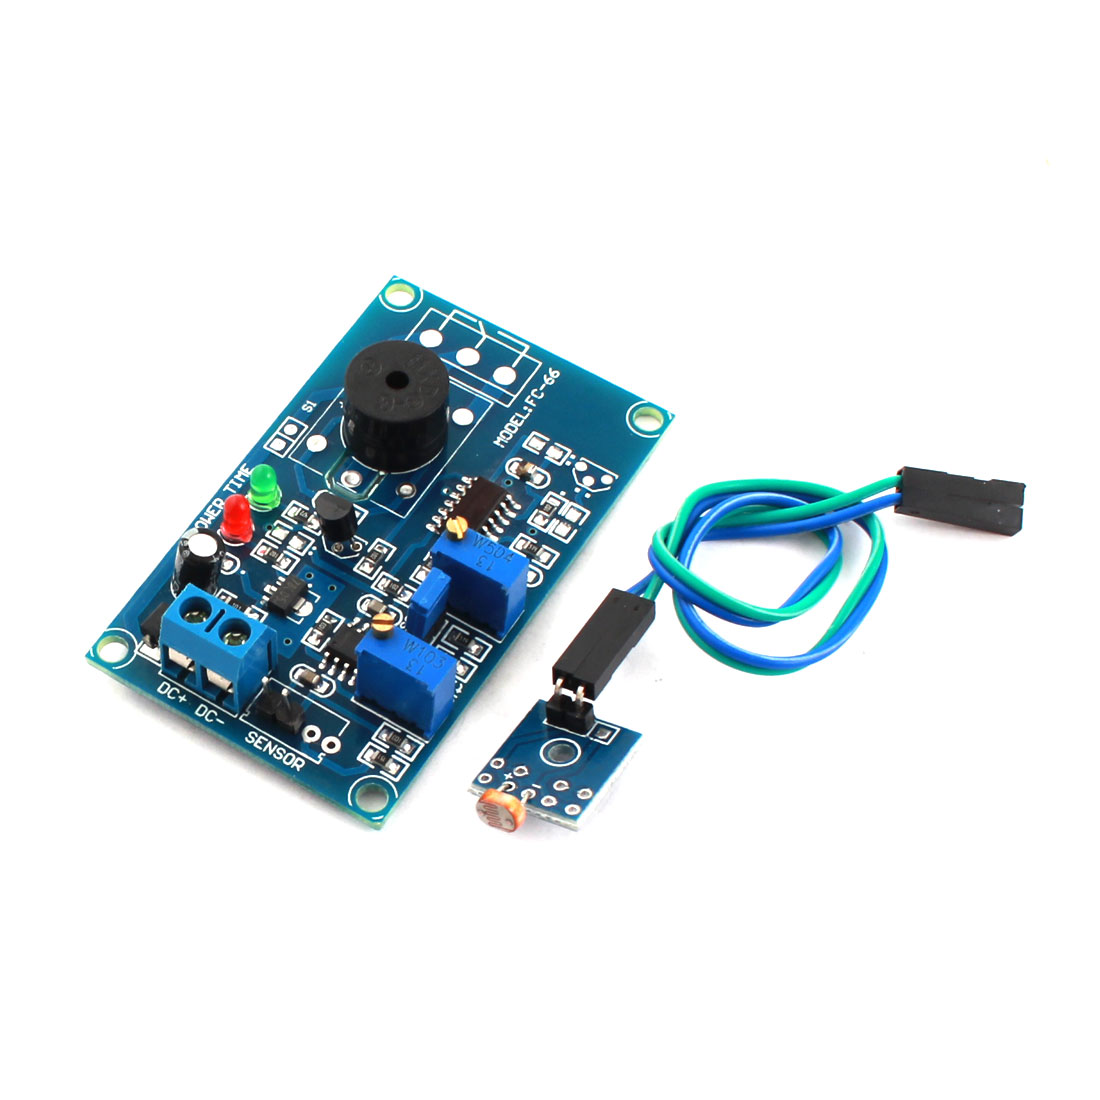 DC12V 0-20S Adjustable Time Light Trigged Photoresistor Sensor Optical Delay Alarm Buzzer PCB Module